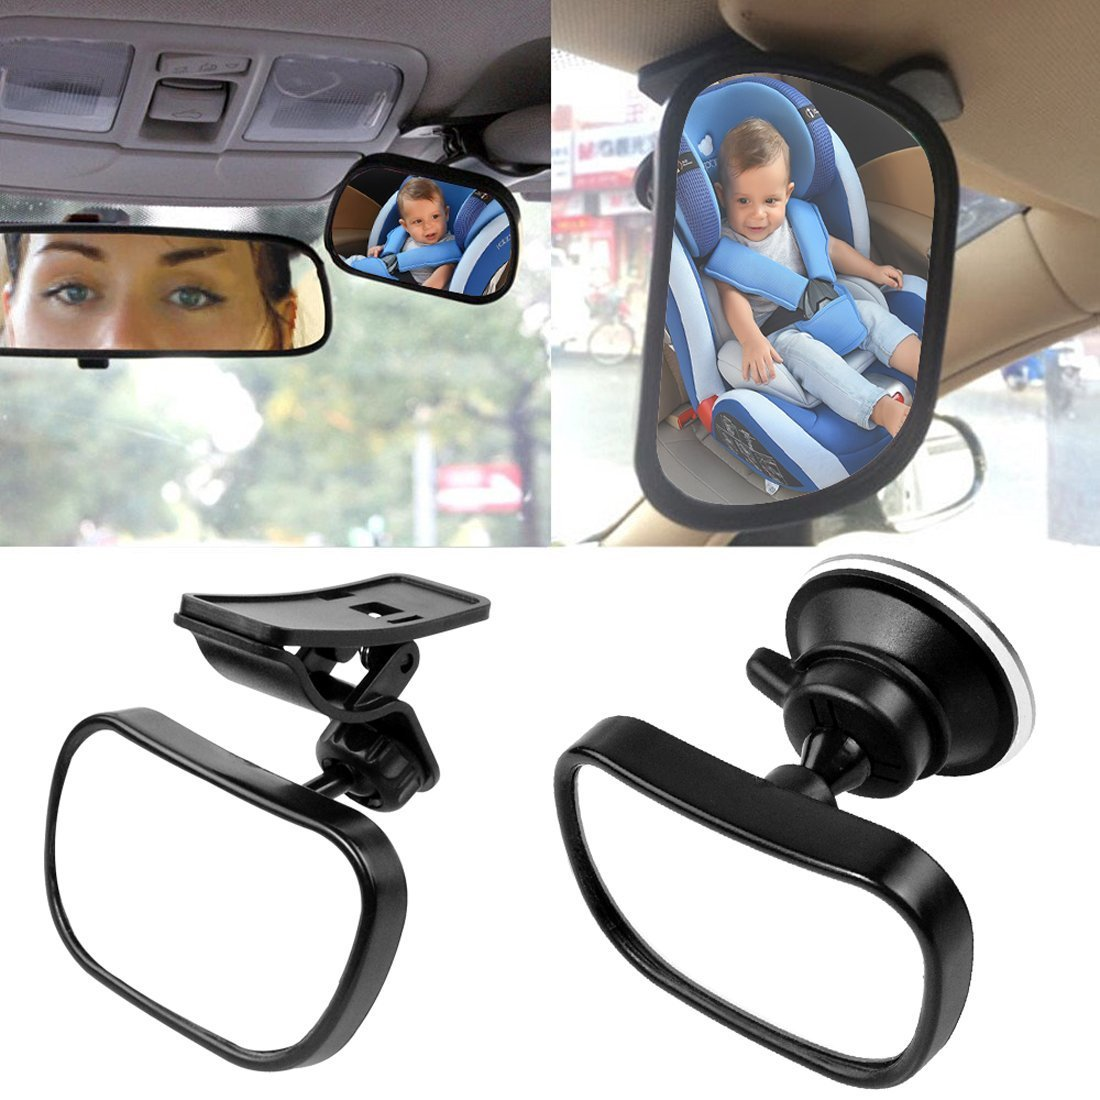 Amazon baby car seat mirror best large backseat infant rear kobwa baby car mirror rear facing view infanttoddler in back seat shatter fandeluxe Choice Image